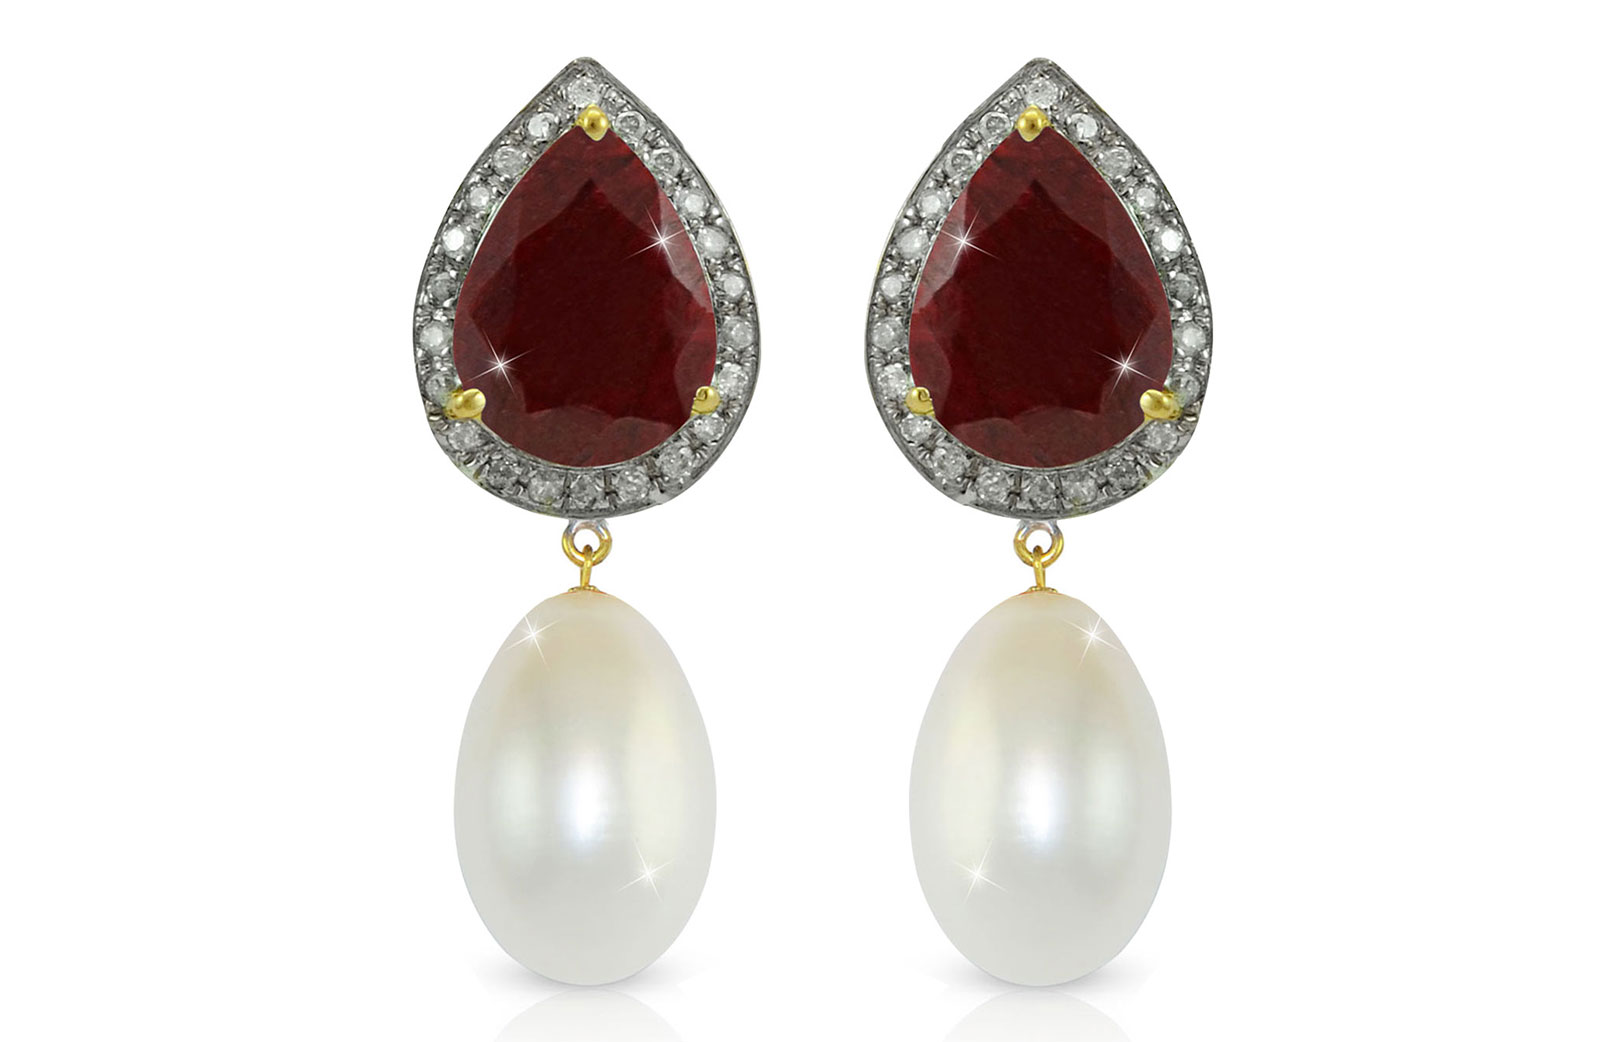 Vera Perla 18K Gold 0.24ct Diamonds, Royal Indian Ruby and 13mm Pearl Earrings